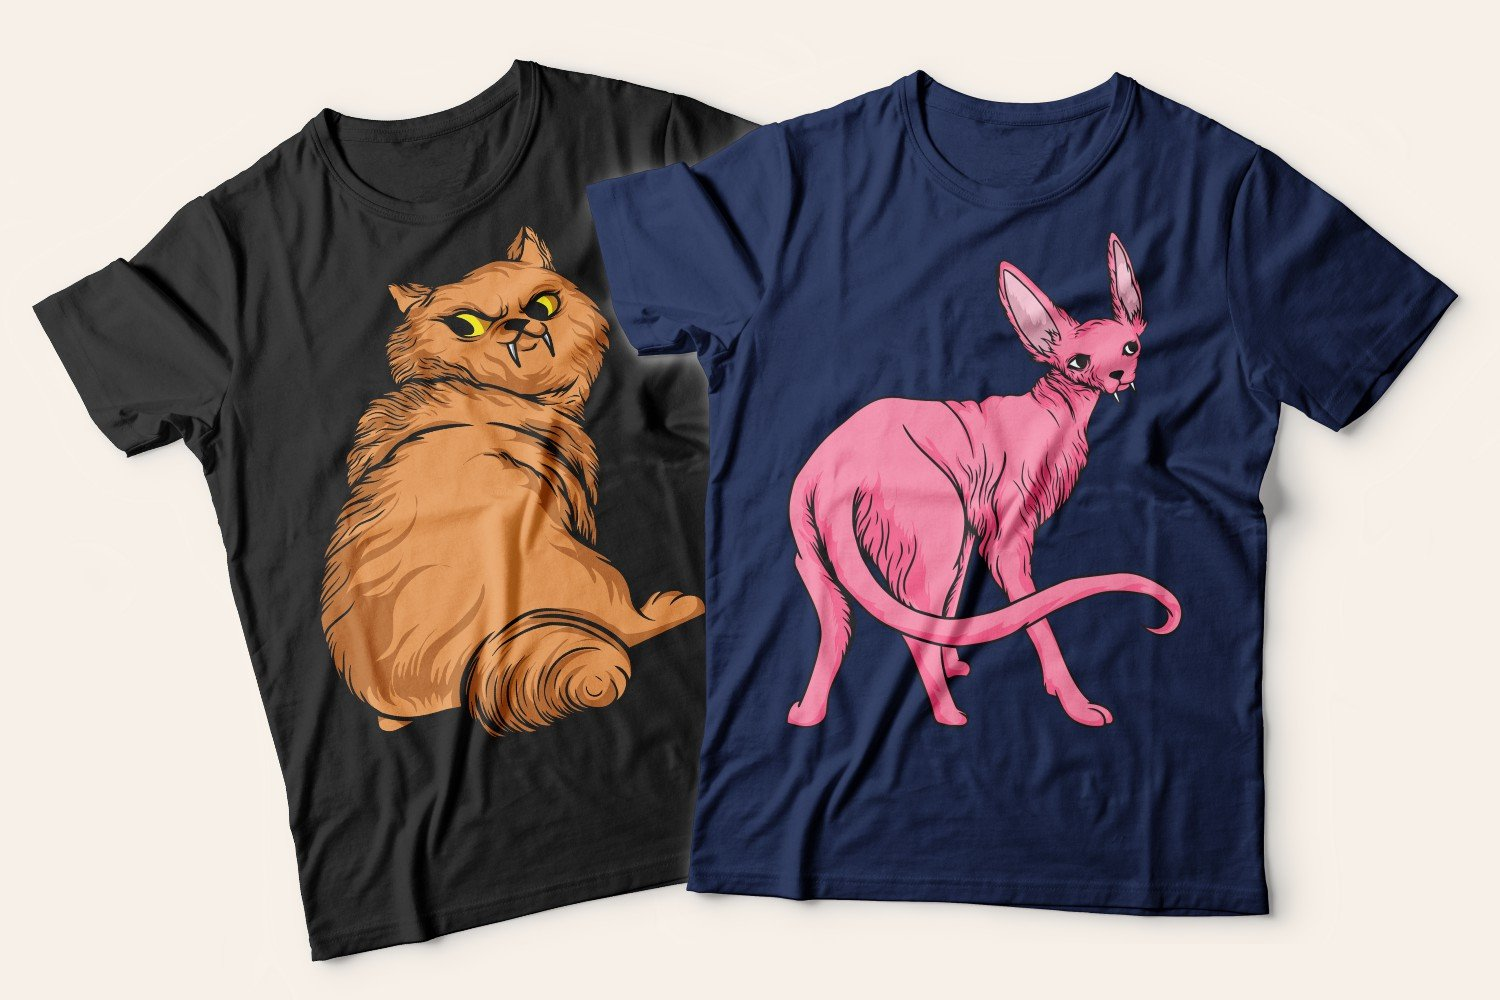 Two T-shirts with cats: one blue with an angry fluffy brown cat, the other with a pink sphinx cat.